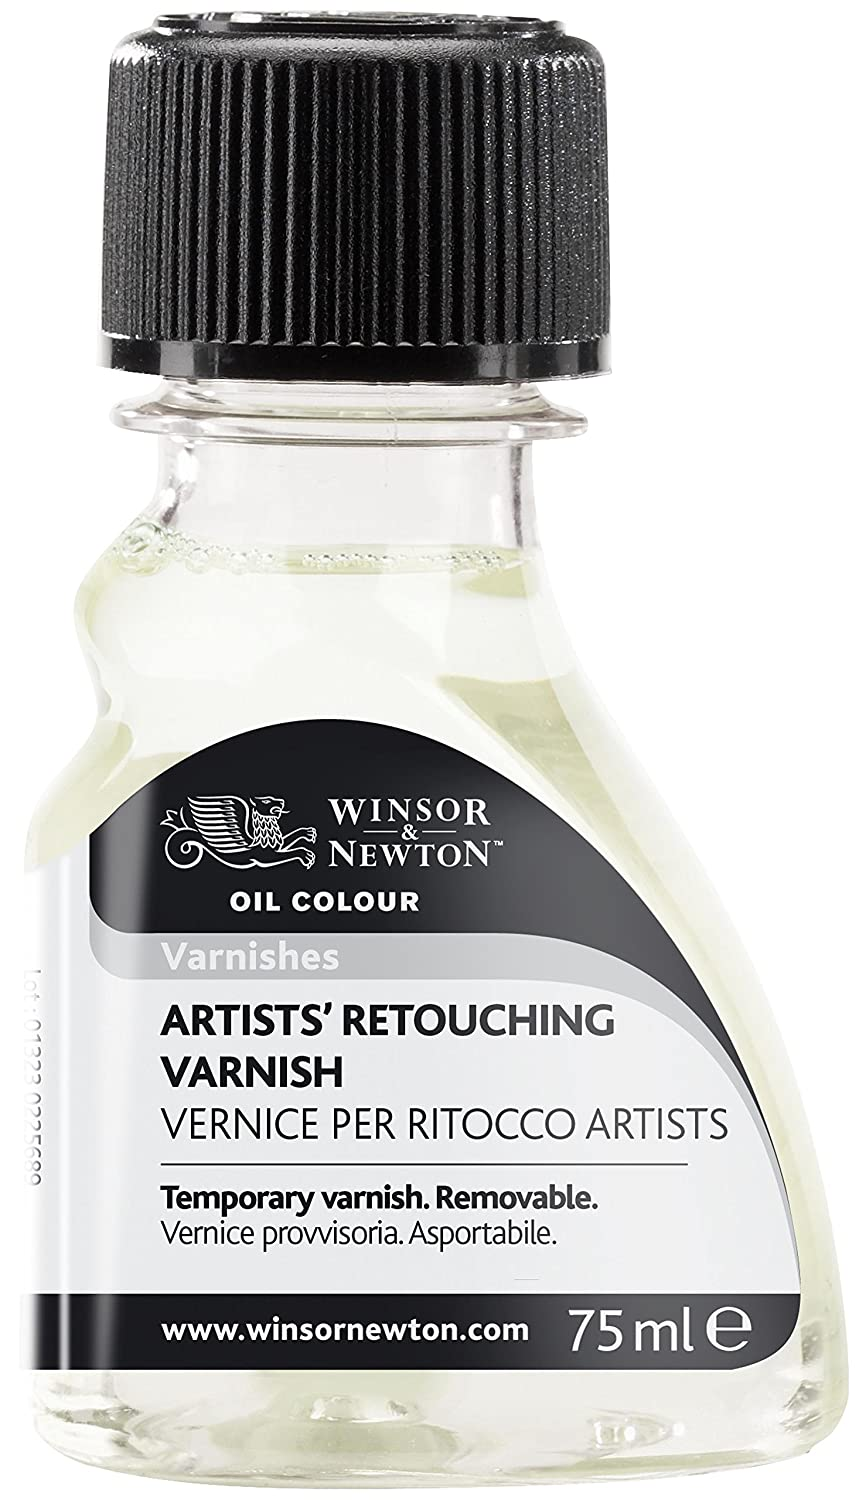 amazon com winsor newton artists retouching varnish 75ml amazon com winsor newton artists retouching varnish 75ml arts crafts sewing